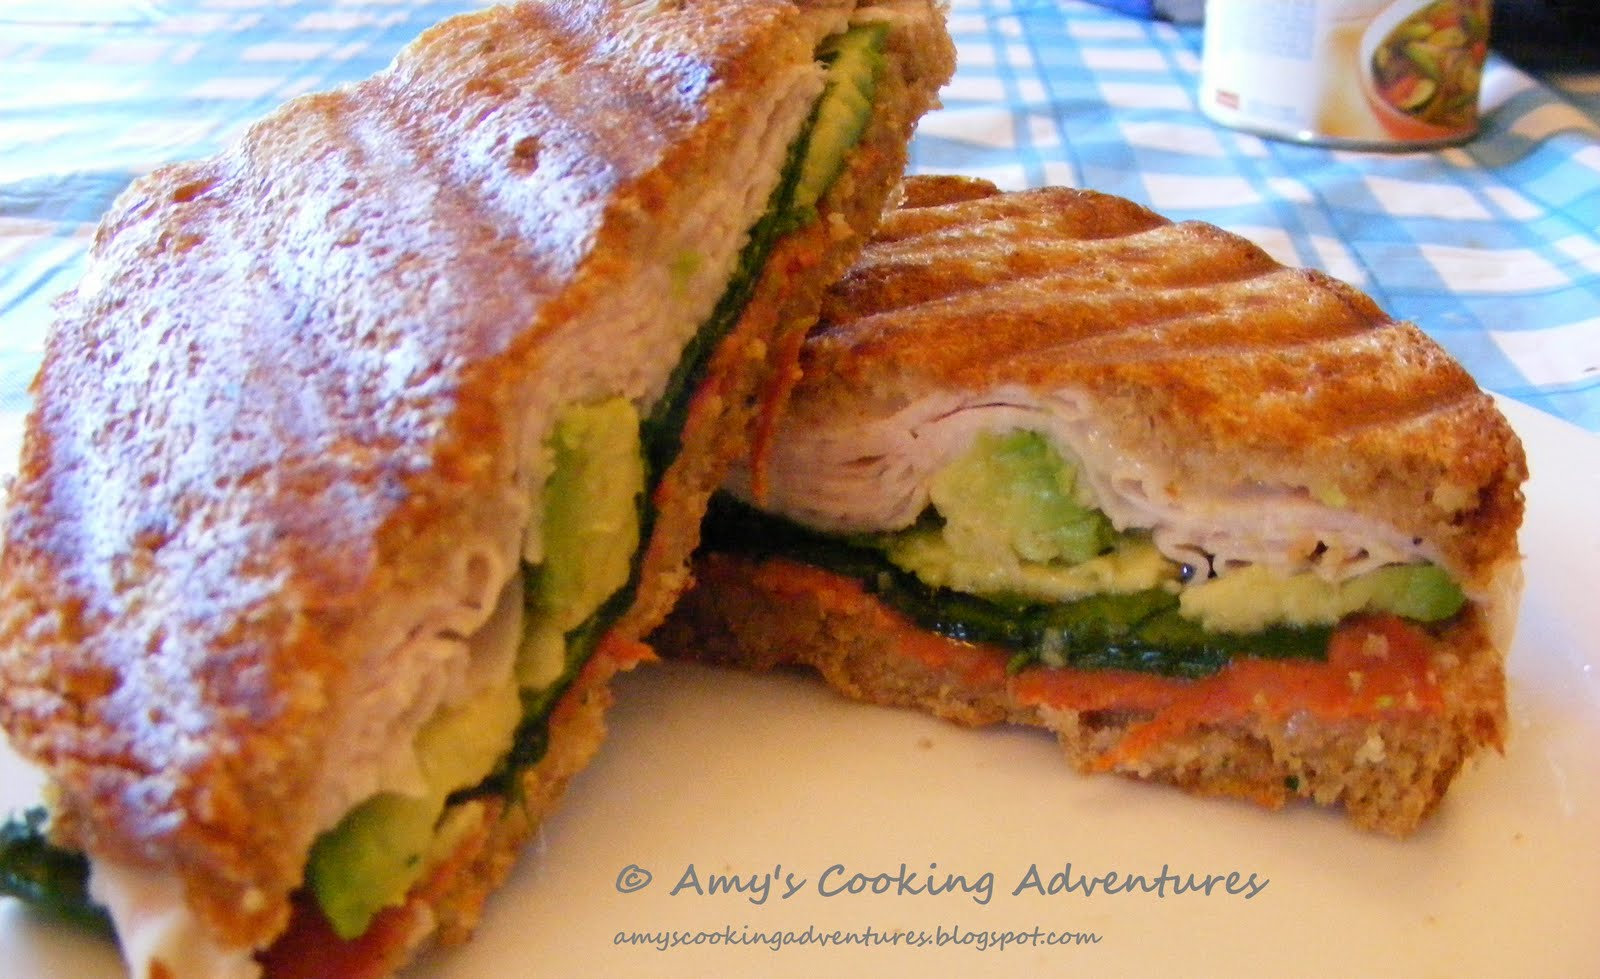 Turkey & Avocado Panini on Onion Bread